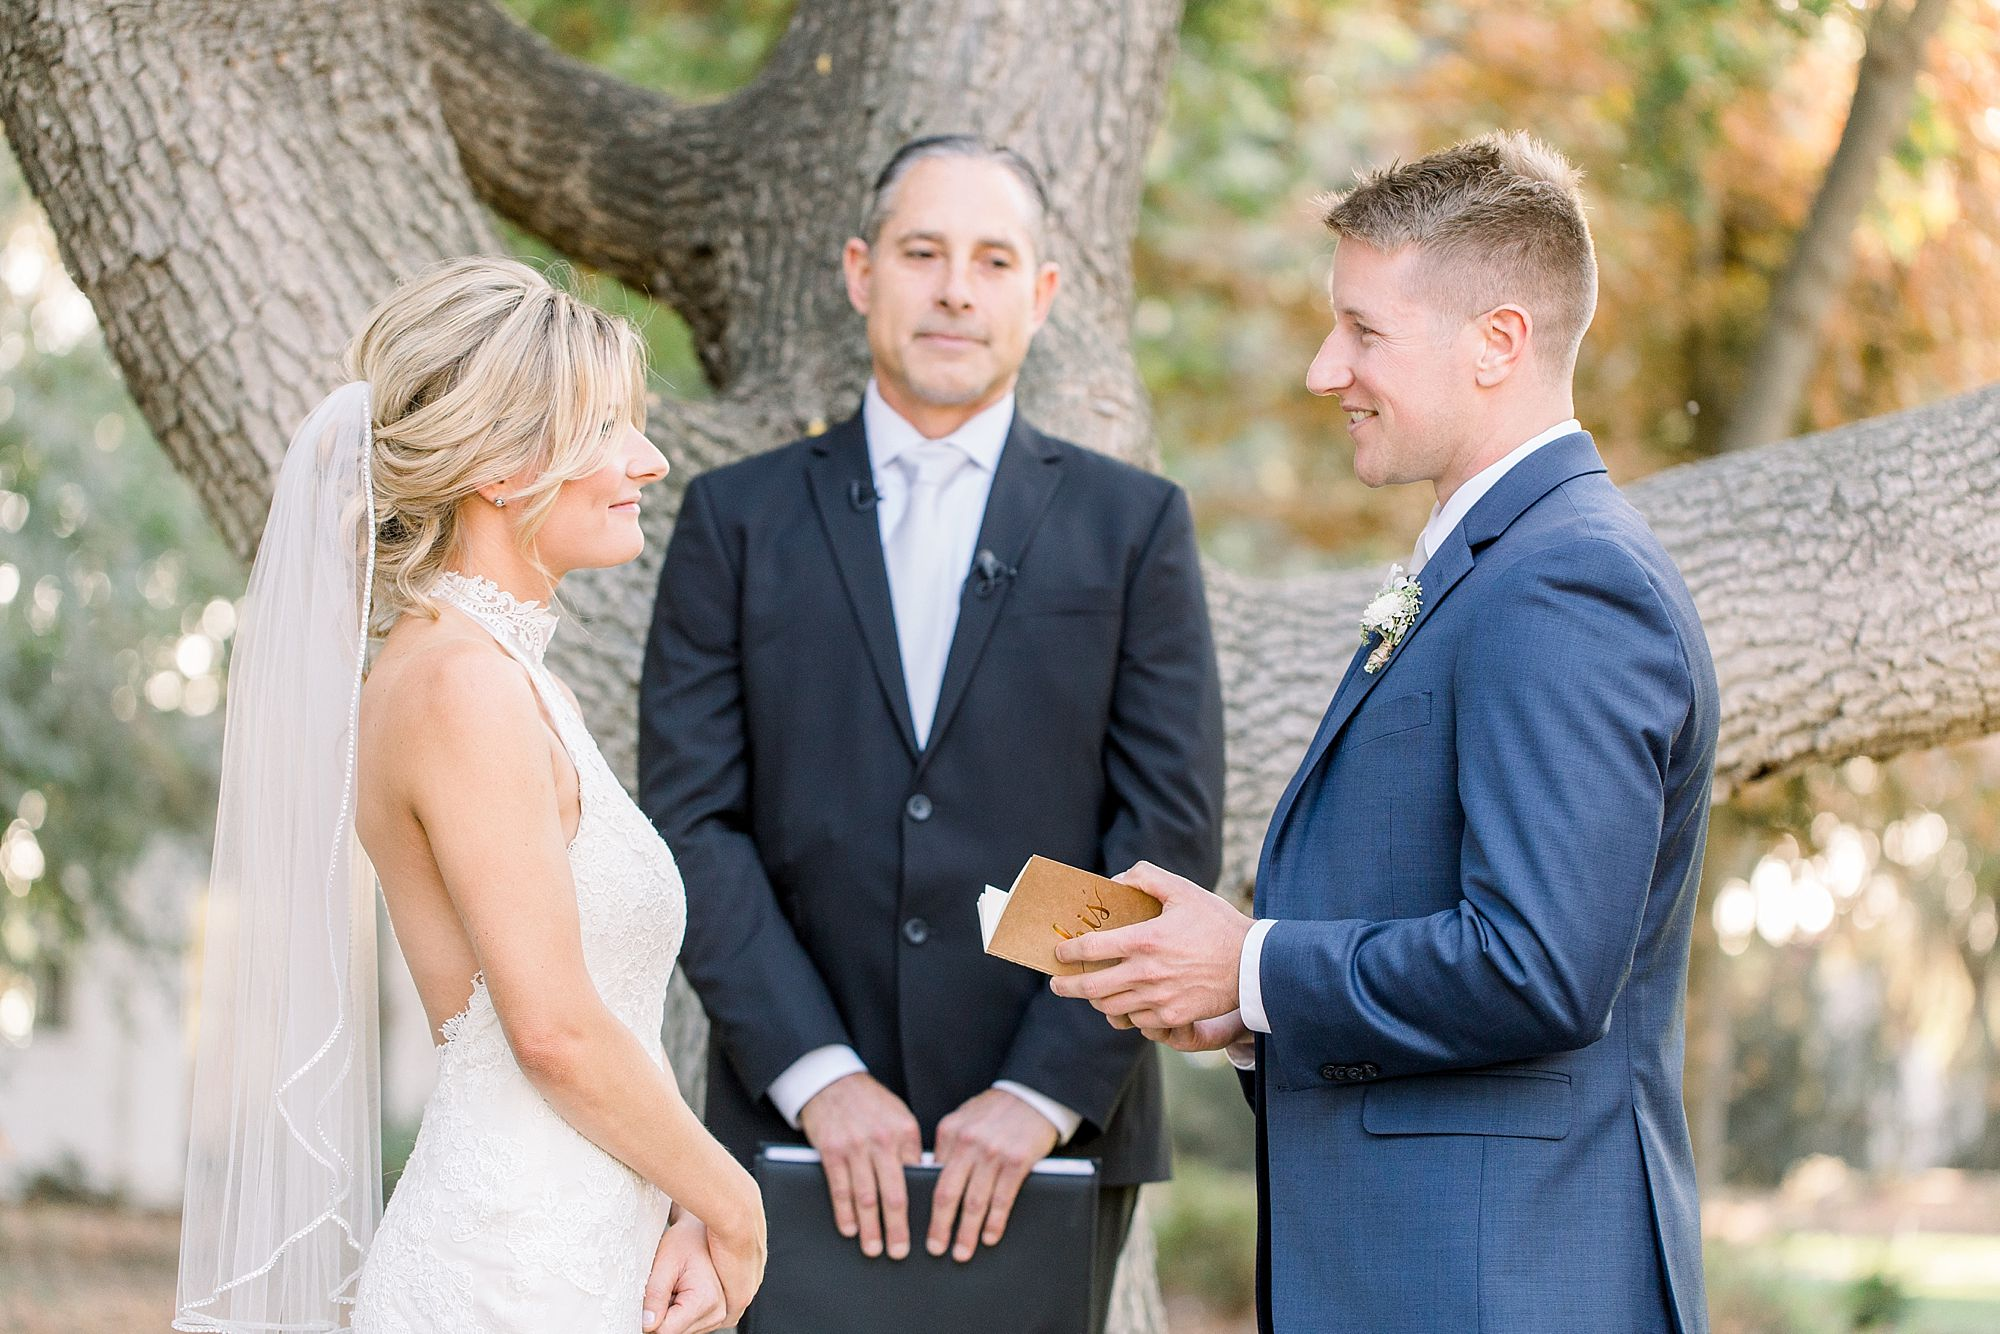 The Maples Wedding in Woodland California - Ashley Baumgartner - Sacramento Wedding Photographer - Sacramento Film Photographer_0041.jpg